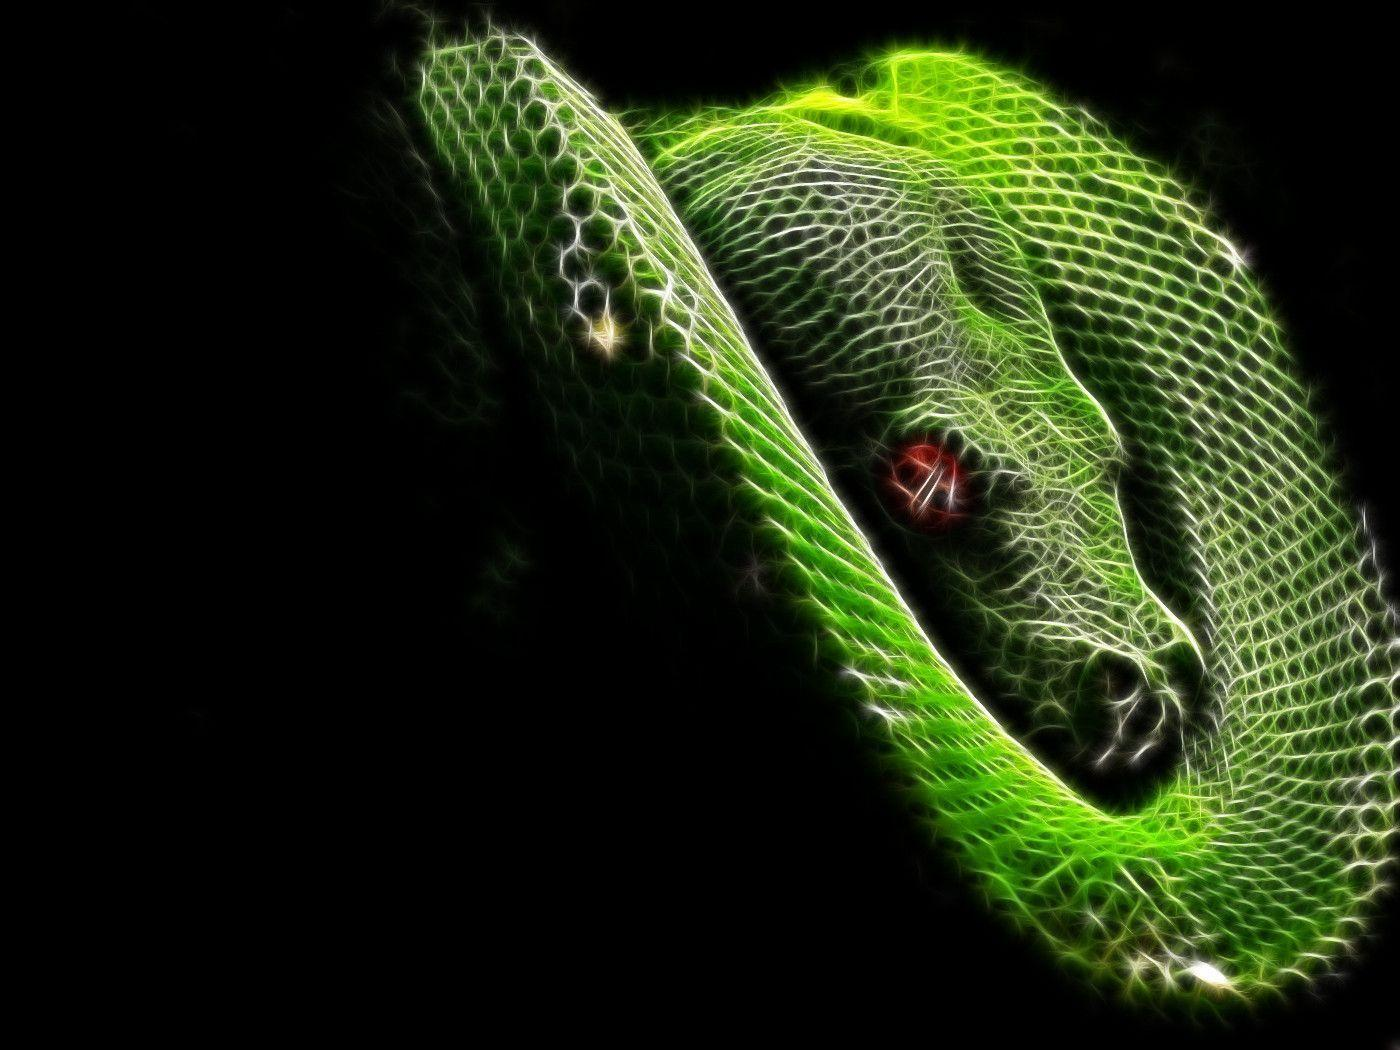 the snake wallpapers - photo #43